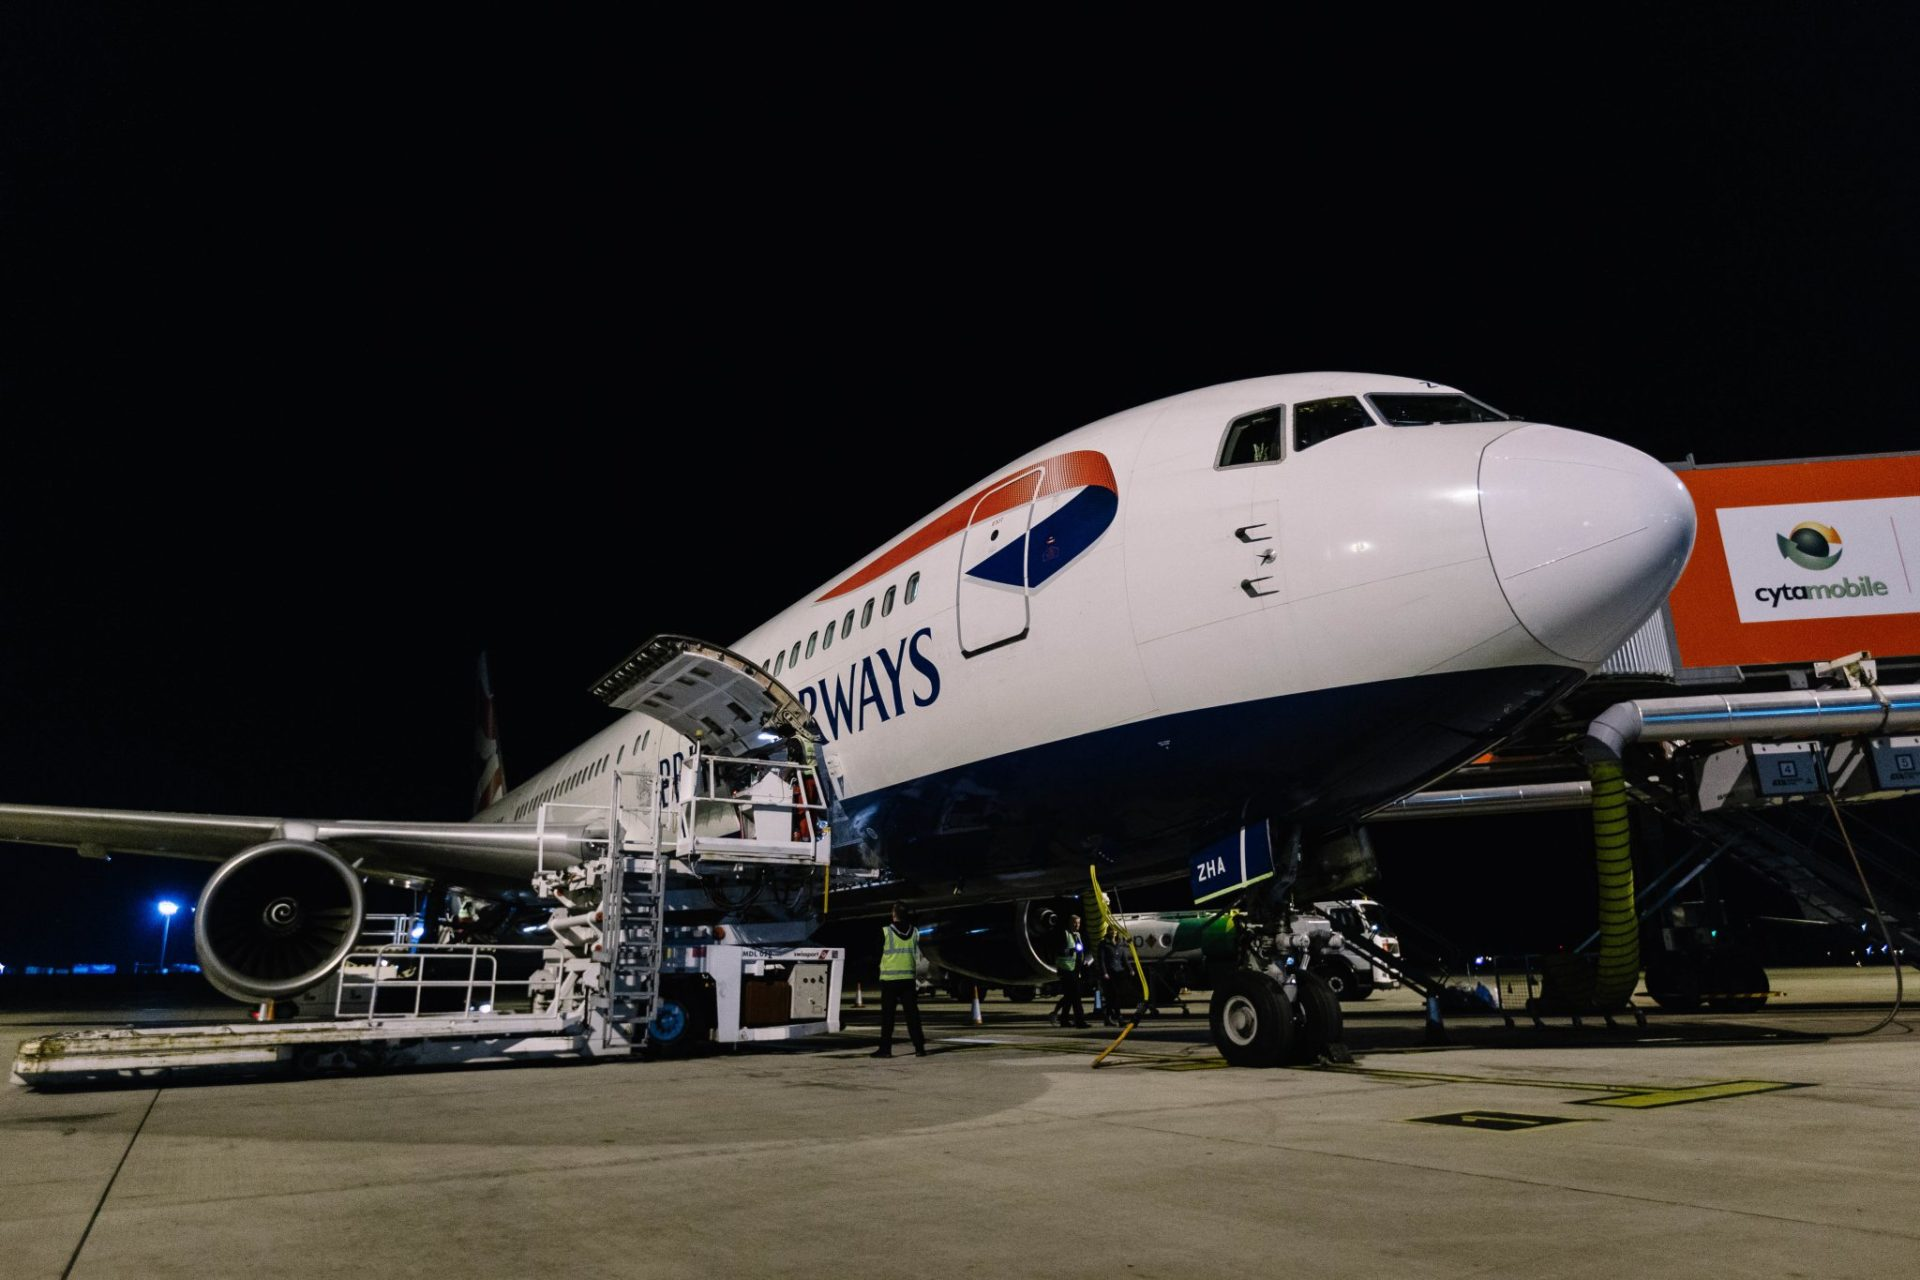 Boeing 767 G-BZHA prepares to leave Larnaca for the final BA 767 commercial flight (Image: Stuart Bailey www.StuartBaileyPhoto.com)